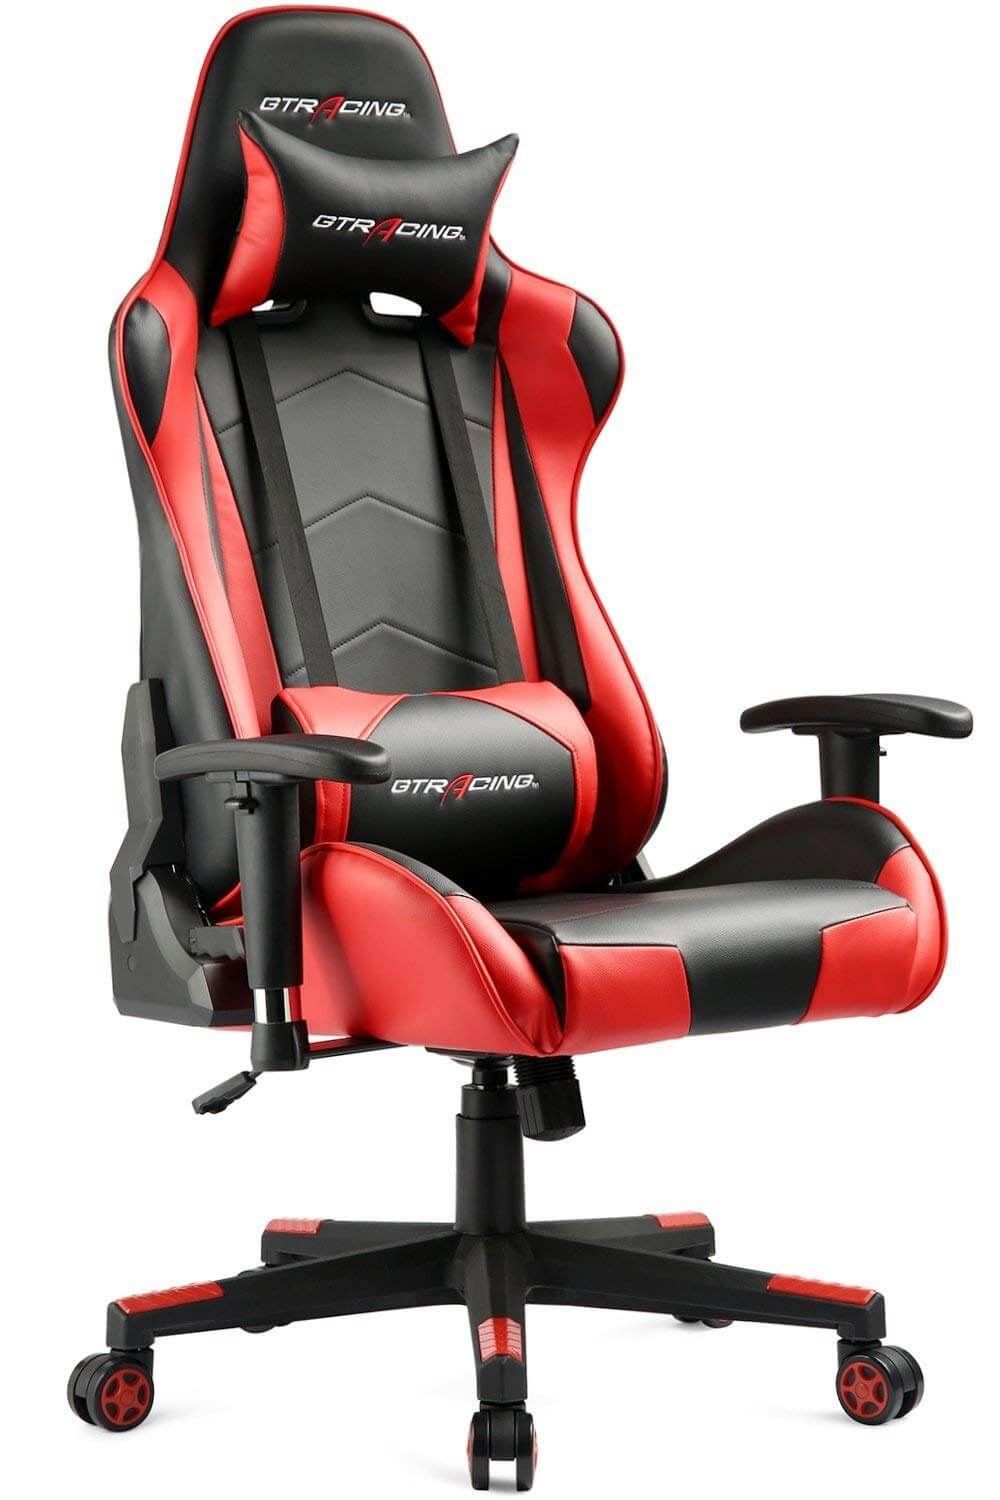 Gamers Chairs The Best Amazon Gaming Chair A Full Review